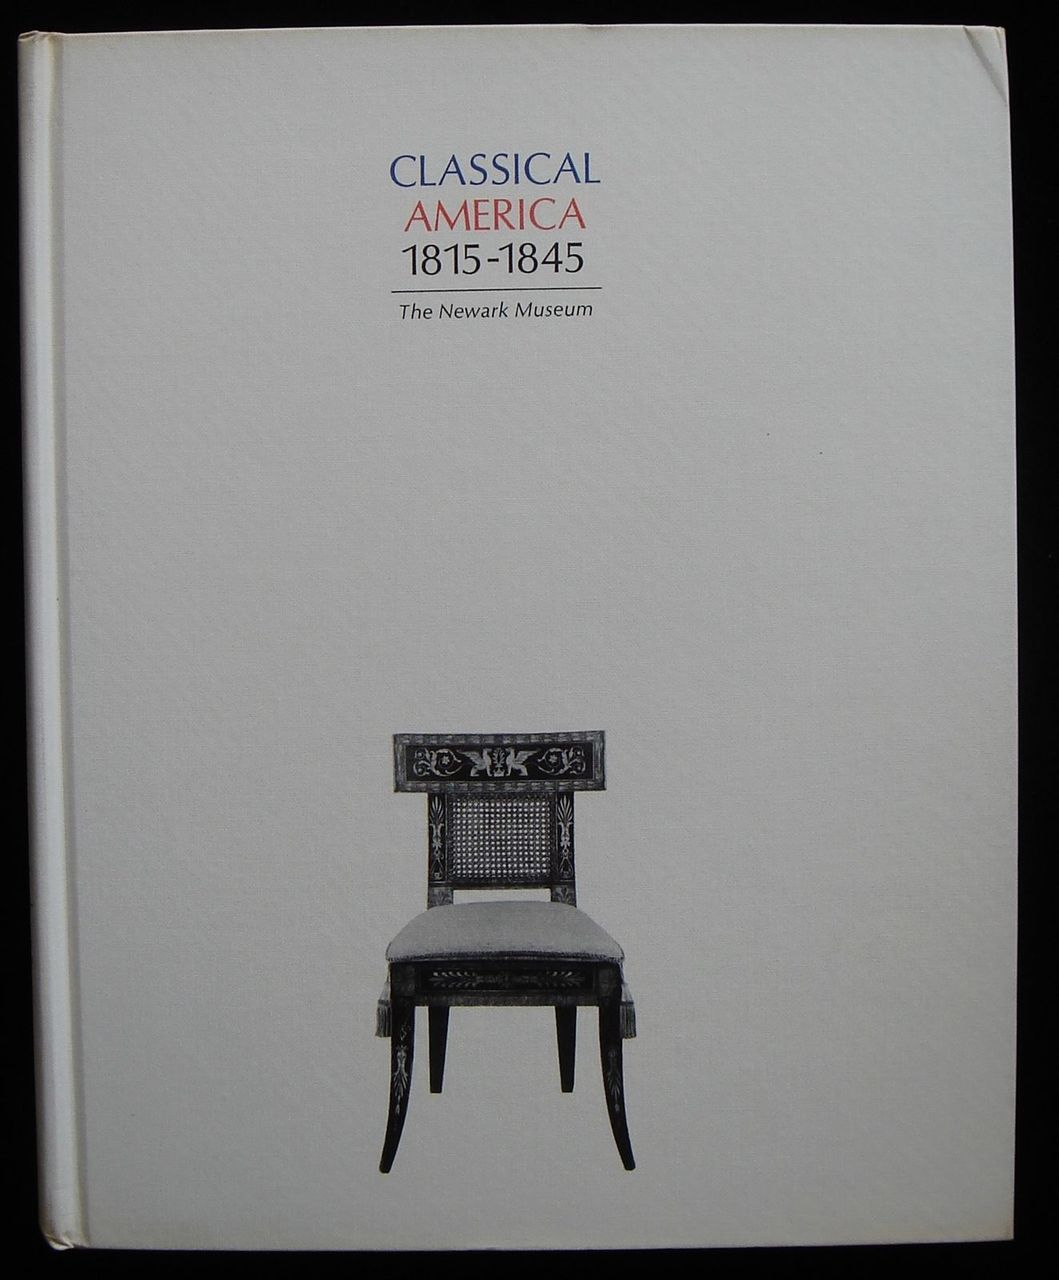 CLASSICAL AMERICA 1815-1845: An Exhibition at the Newark Museum - 1963